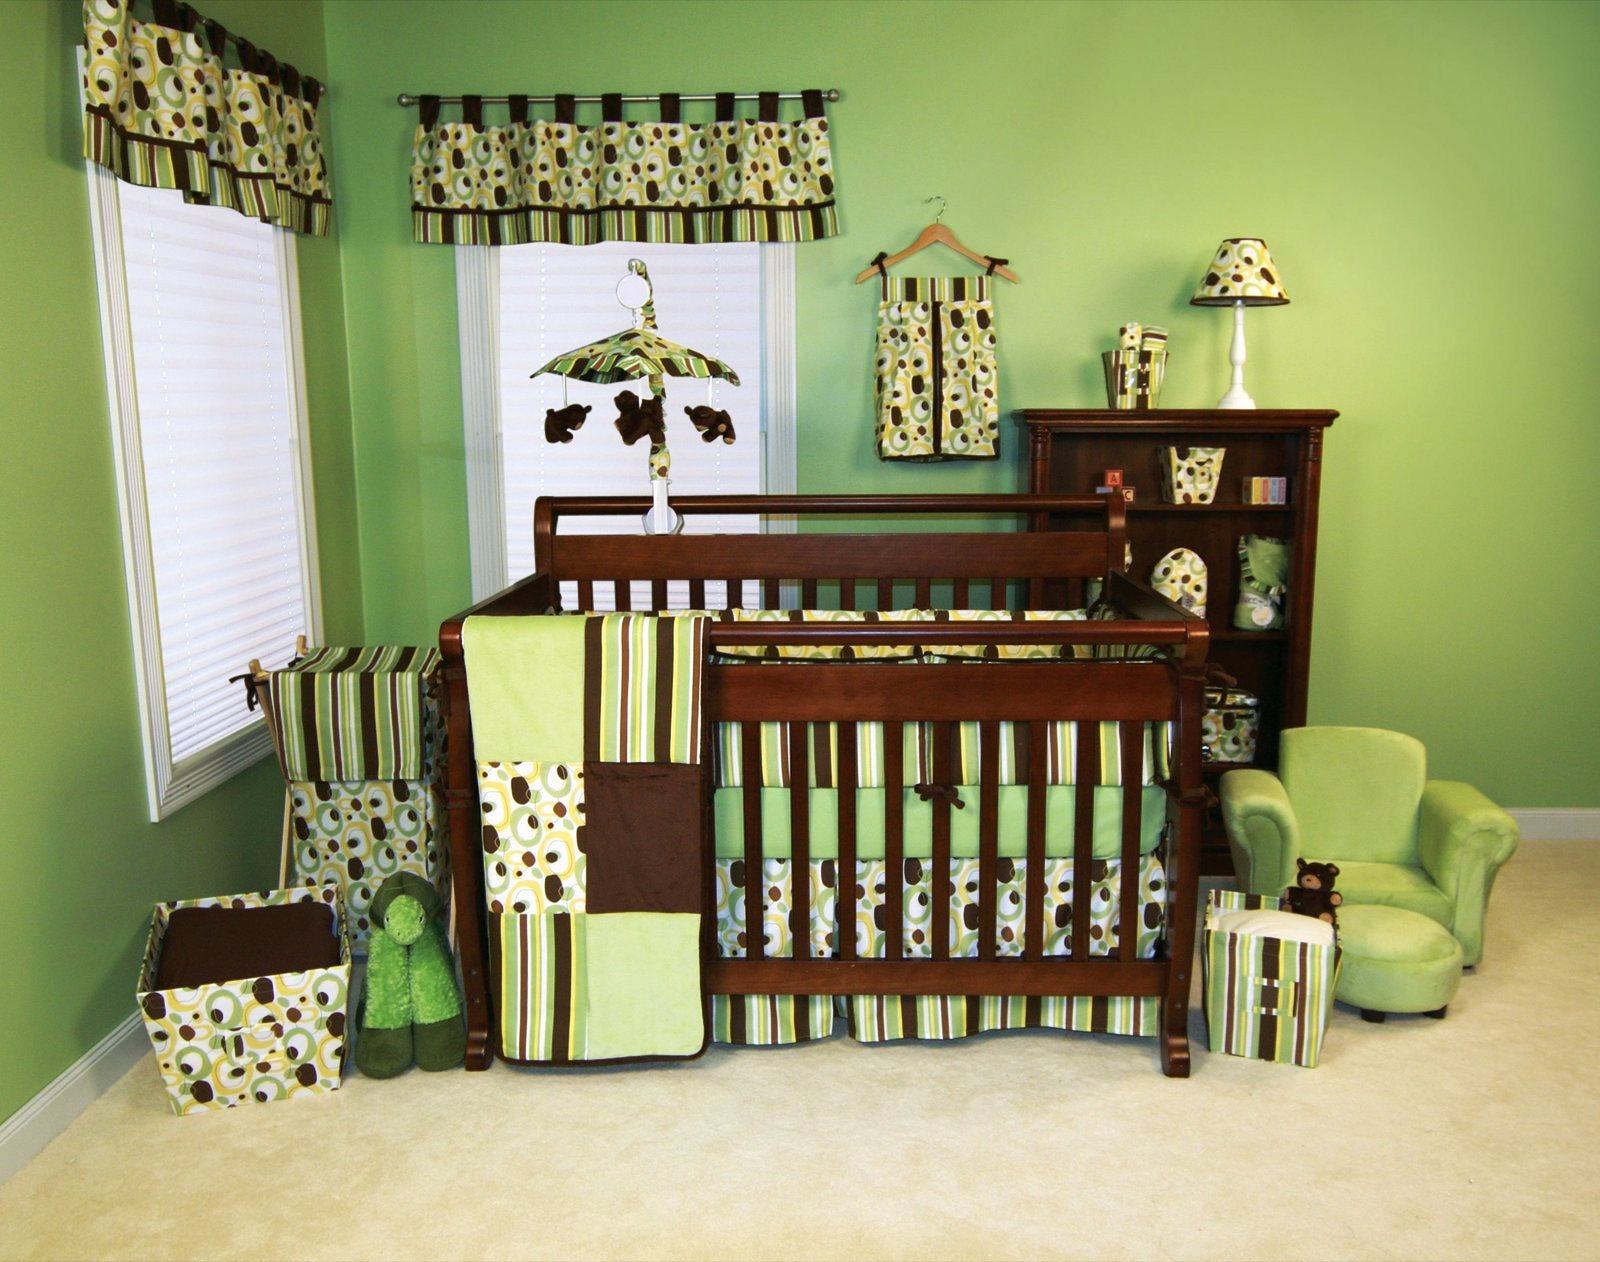 Superbe Refreshing Green Baby Boy Room Ideas With Wooden Baby Crib And Freestanding  Shelf